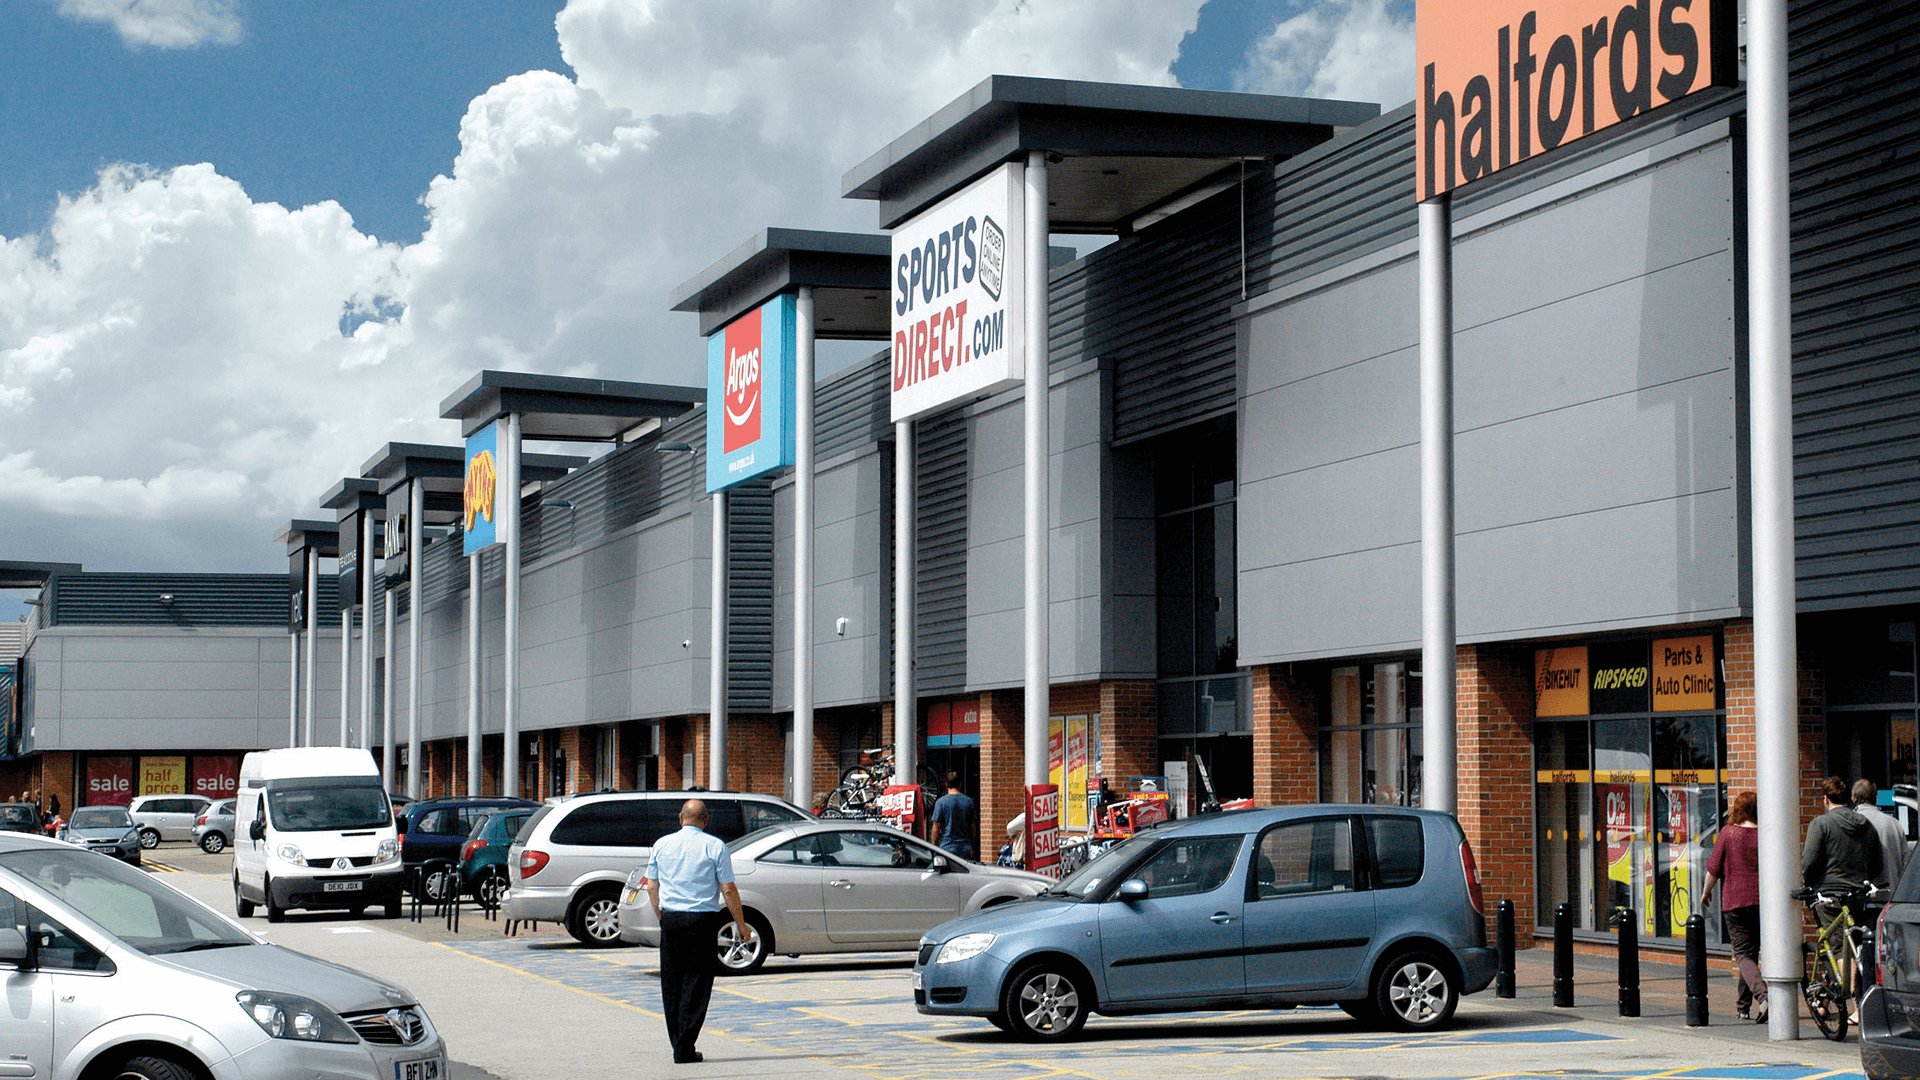 Croft Retail and Leisure Park, Bromborough